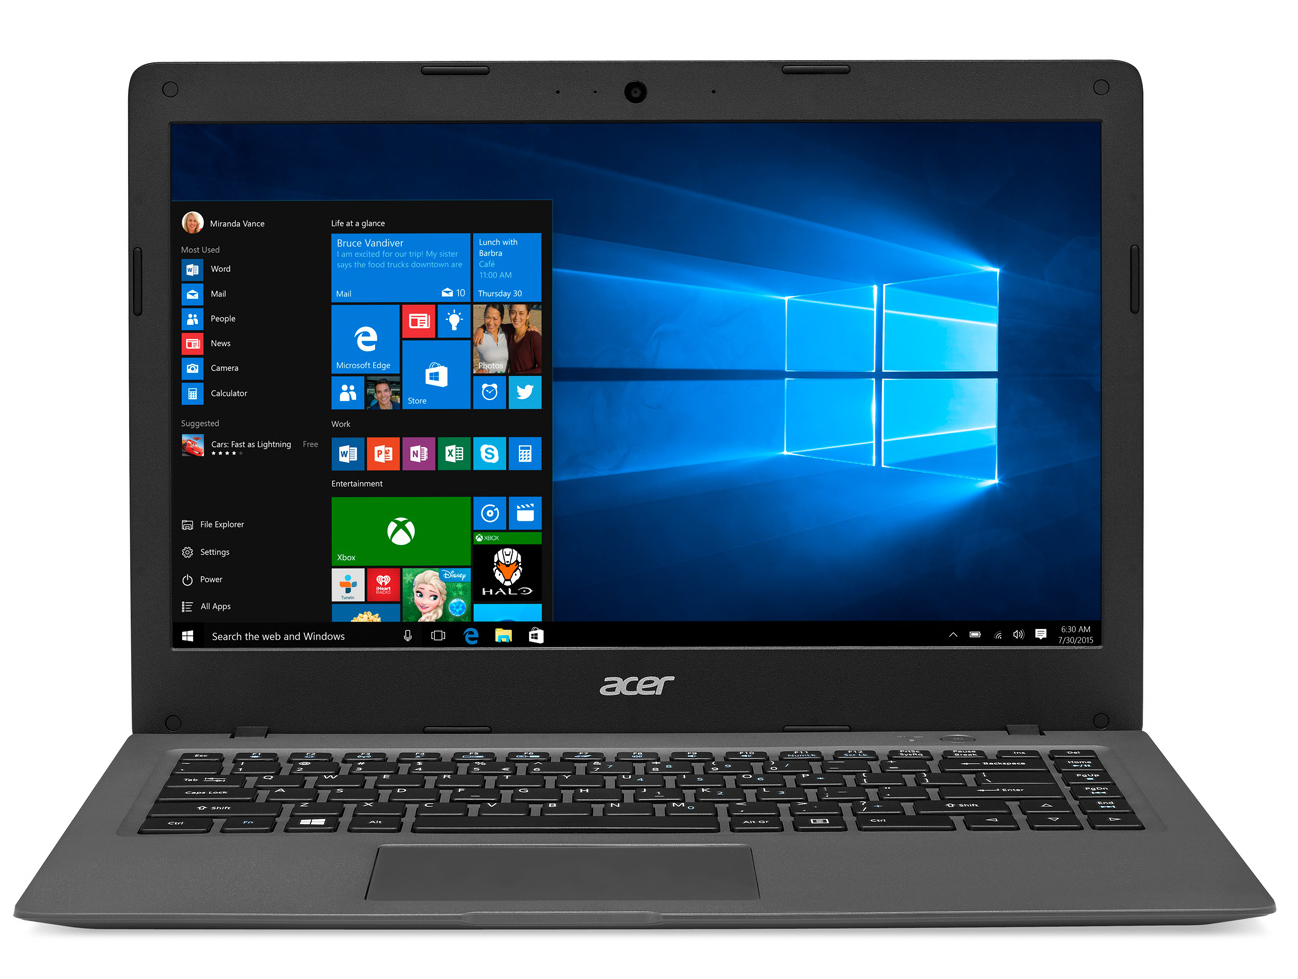 Acer Aspire One 1-431M Drivers Windows 7